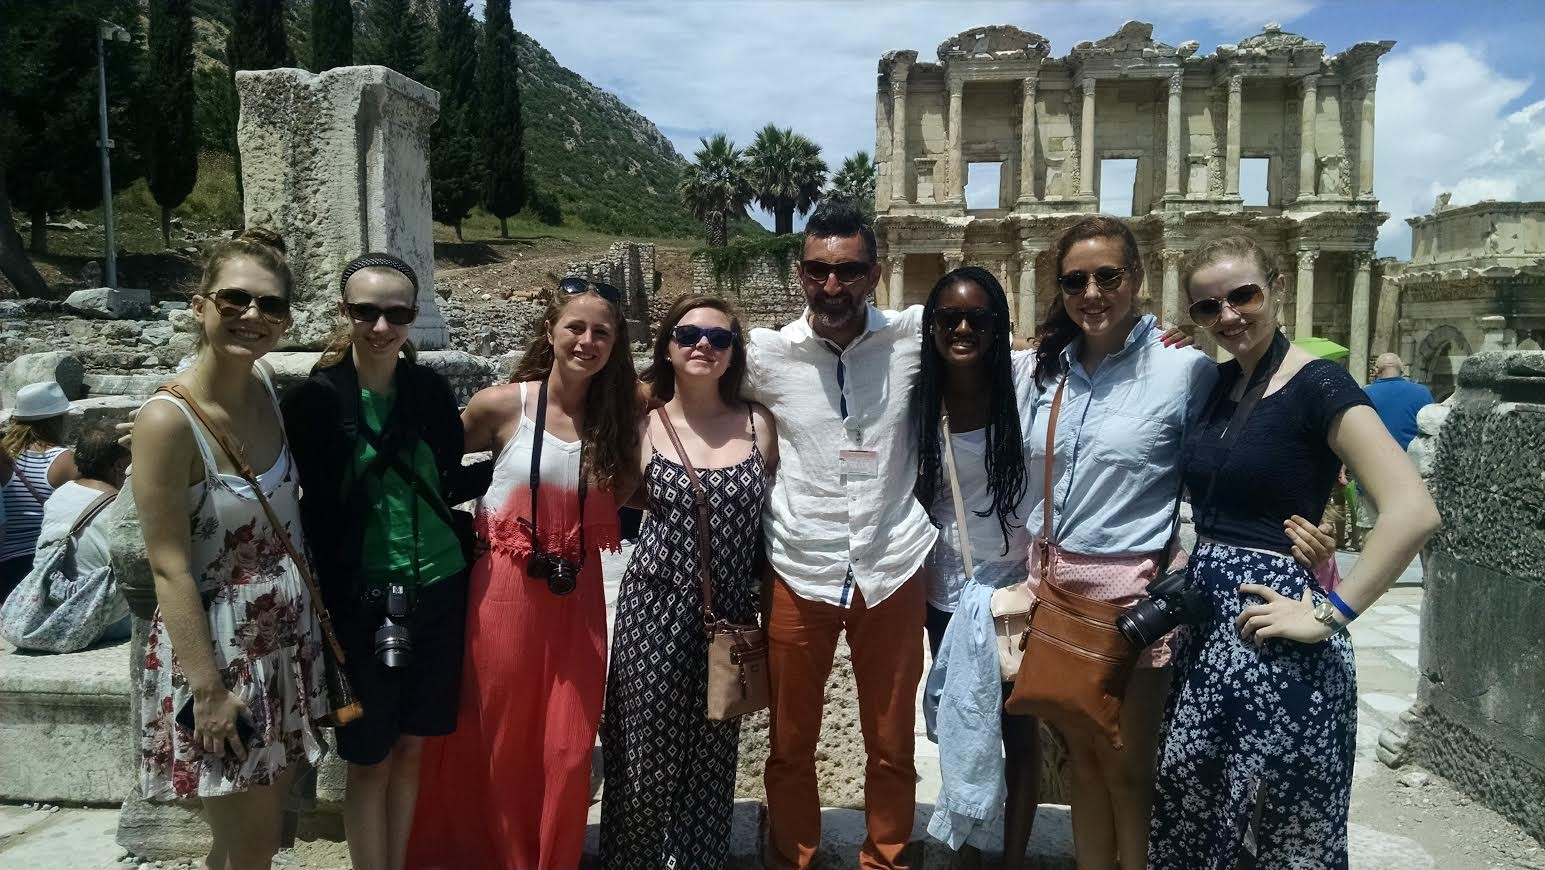 SUA's Ms. Hammond traveled with 7 students this summer to Turkey, Greece, and Rome